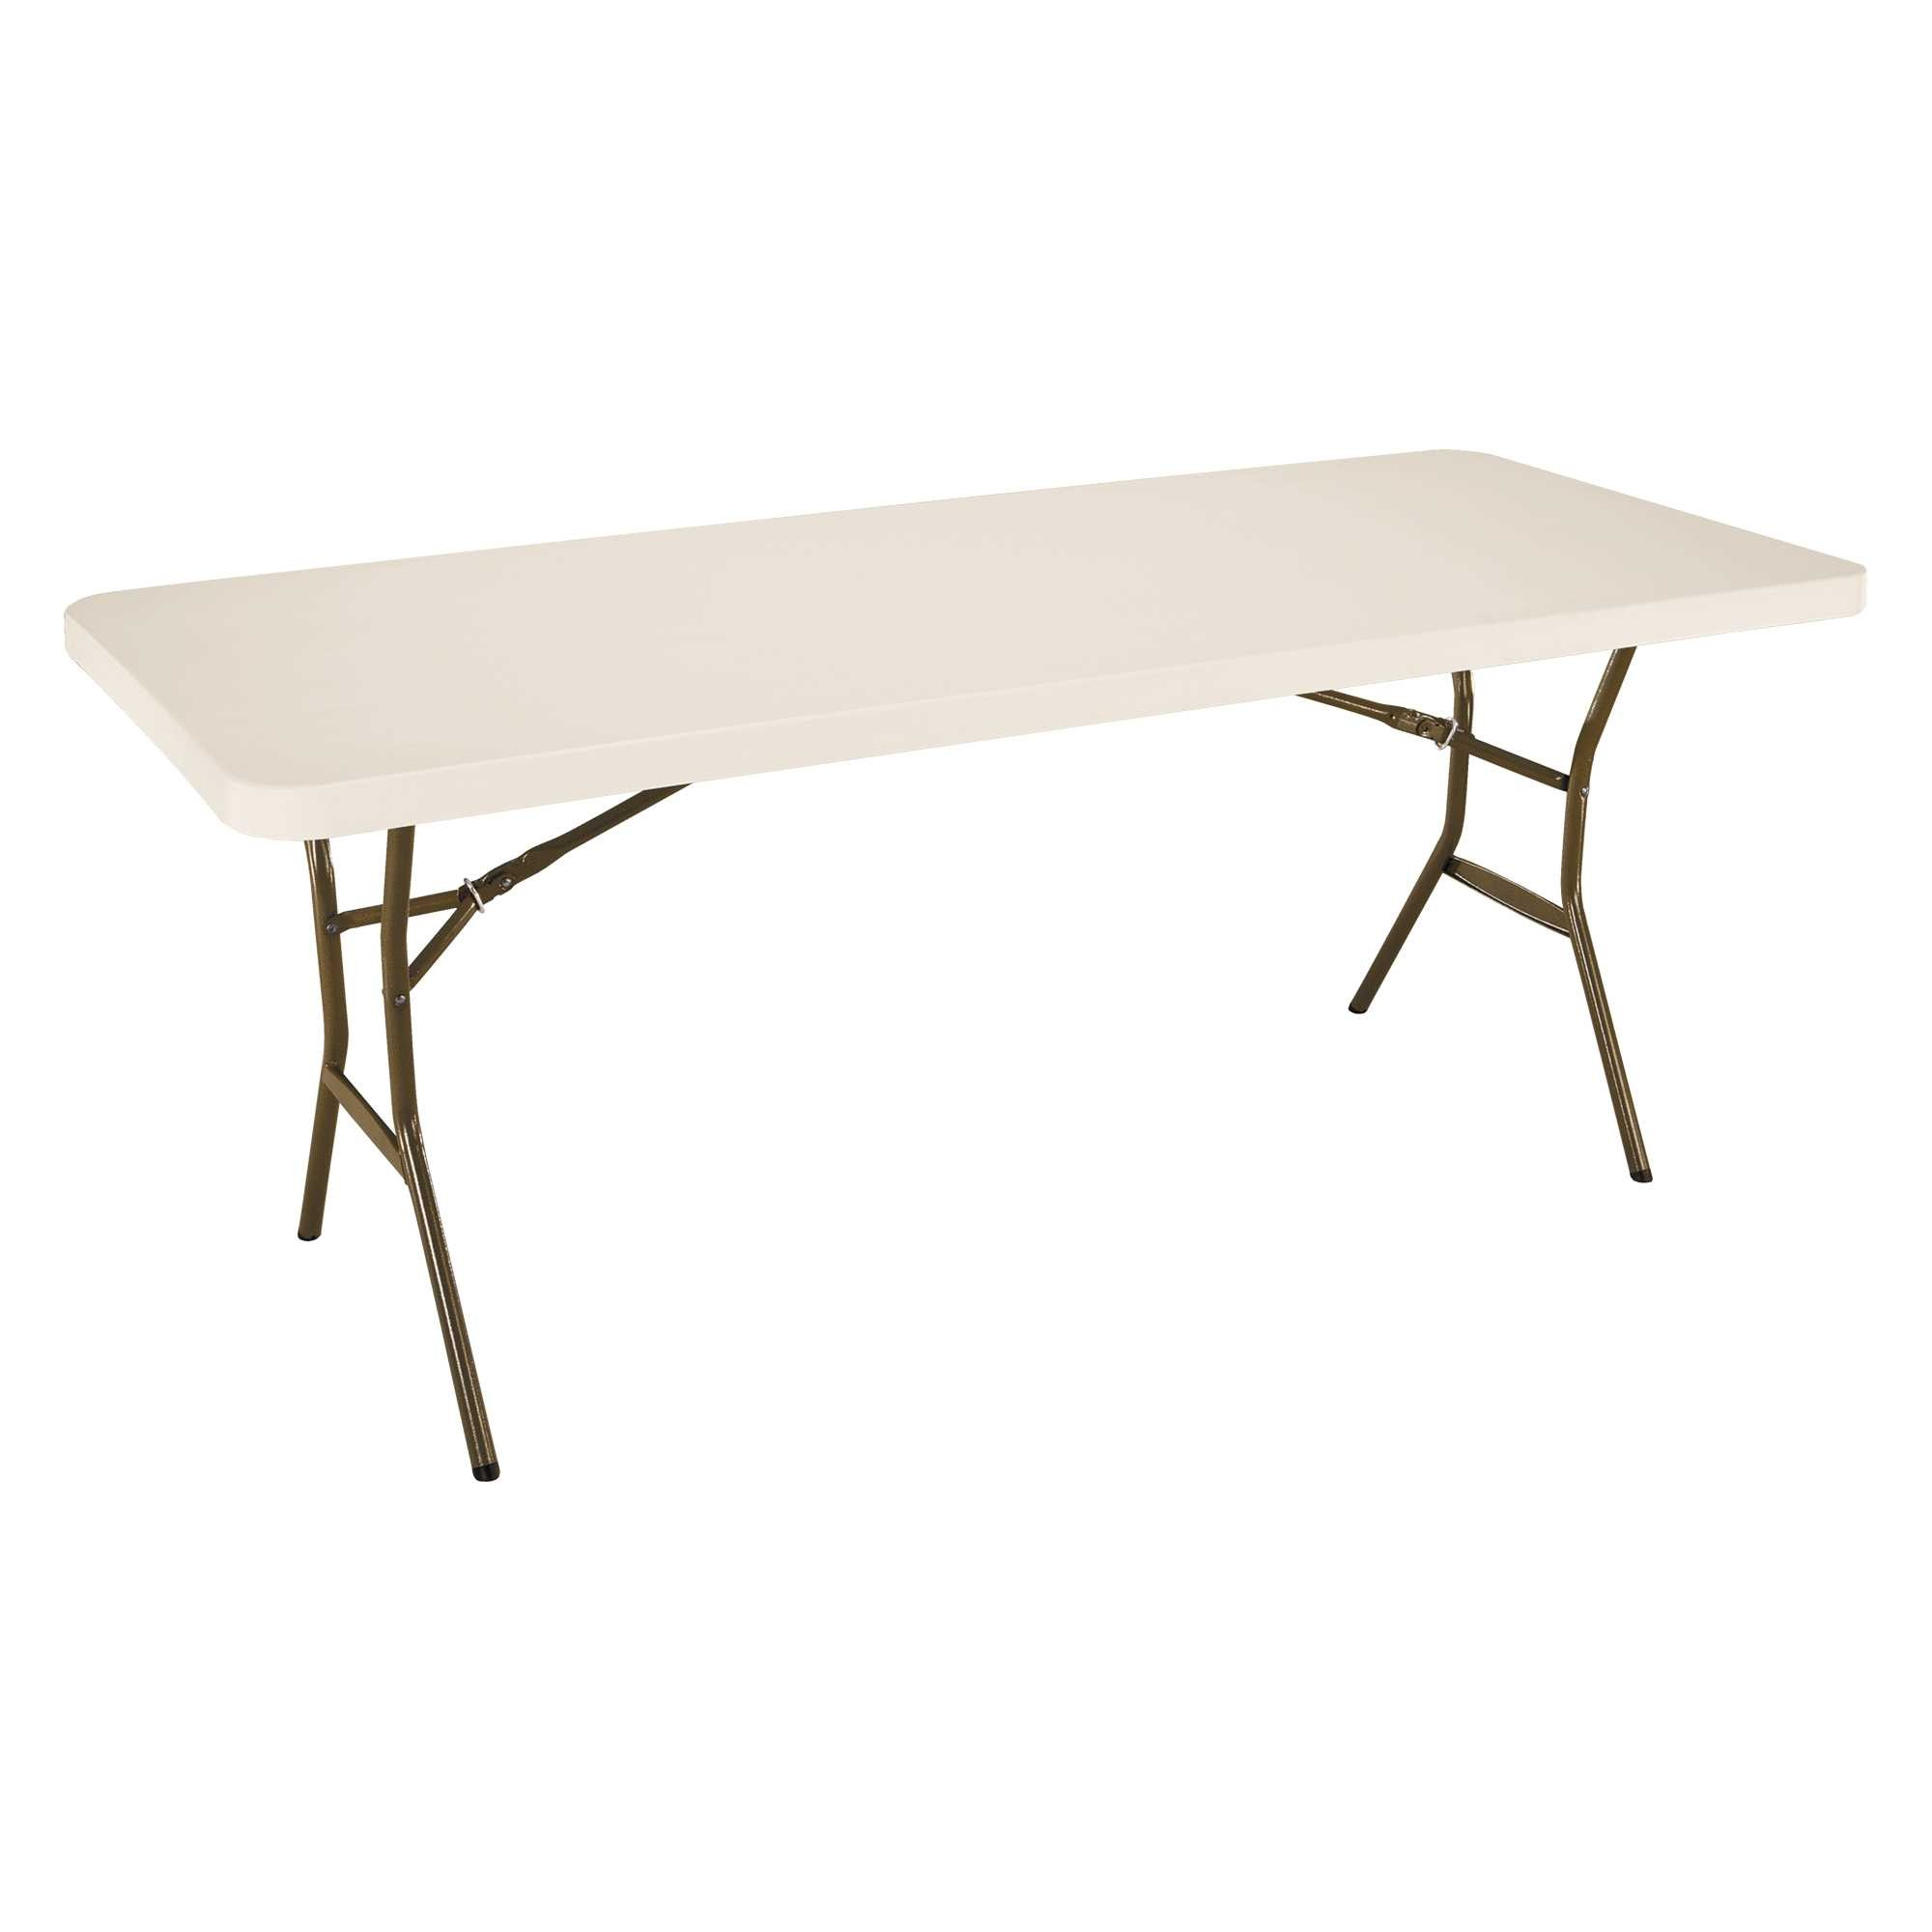 Table Rectangulaire 8 Personnes Table Pliante Rectangulaire 183cm Beige 6 8 Personnes Slf Location